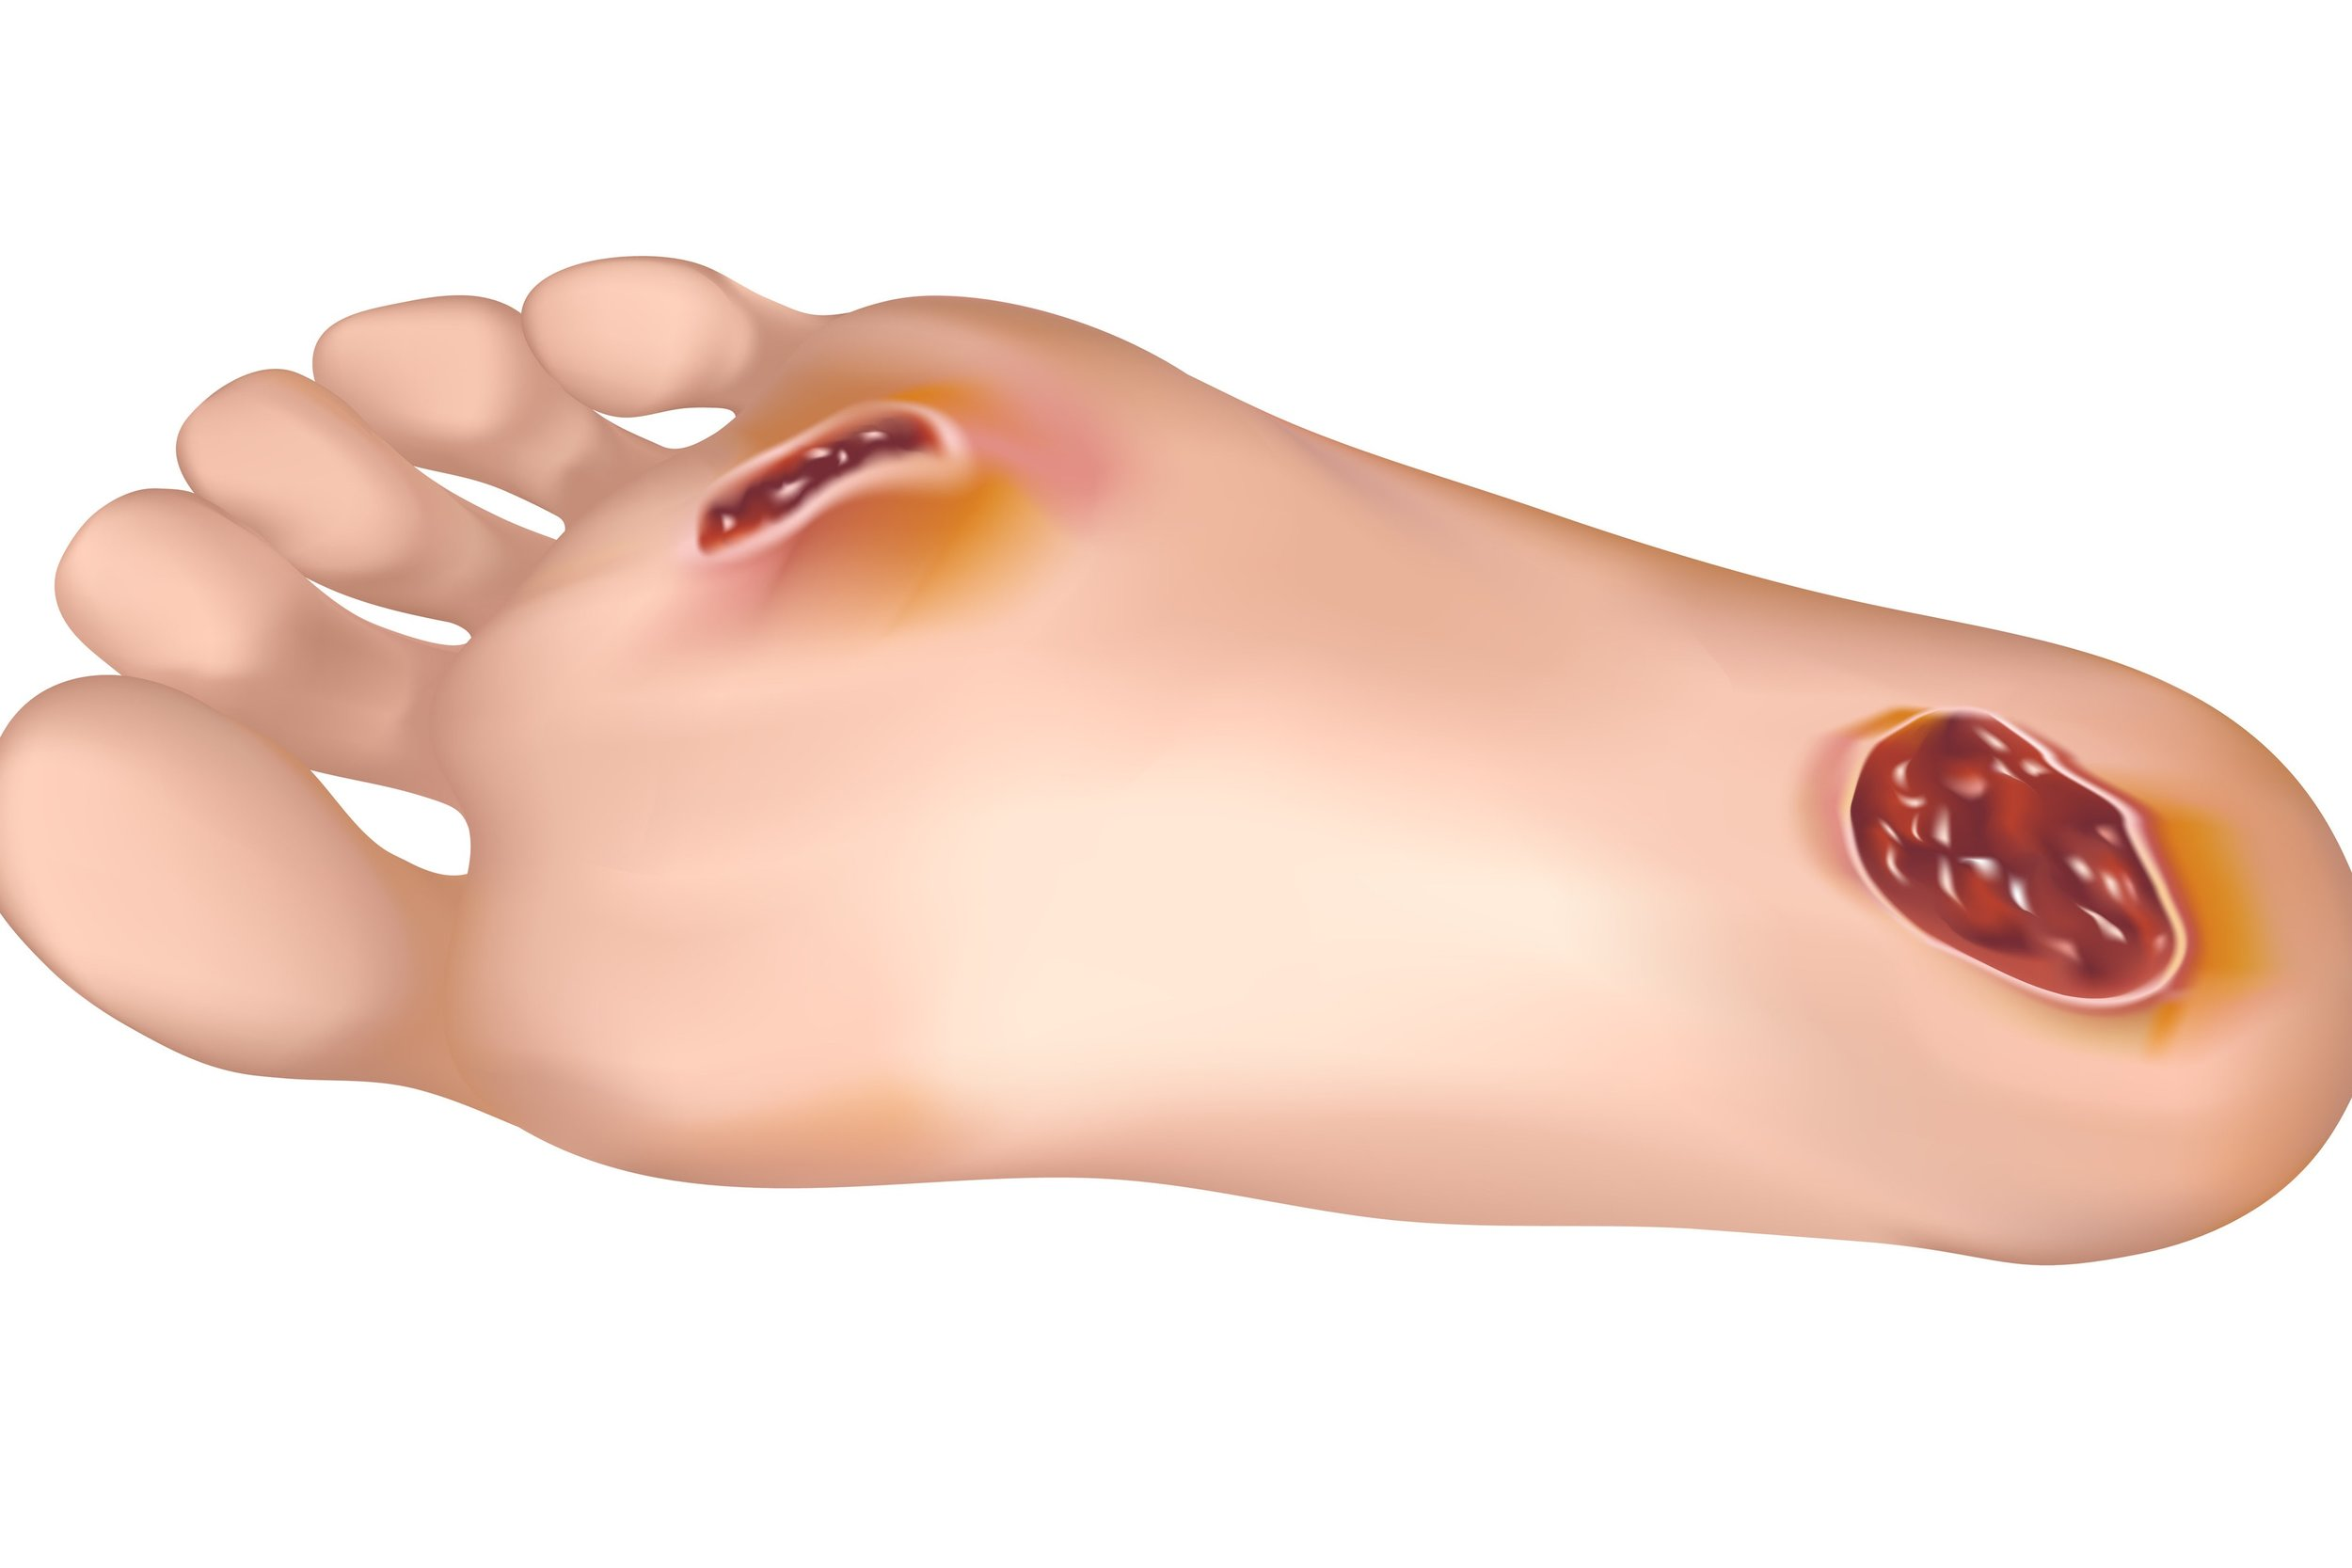 foot ulcer treatment and wound management - foot doctor serving whiting and toms river nj